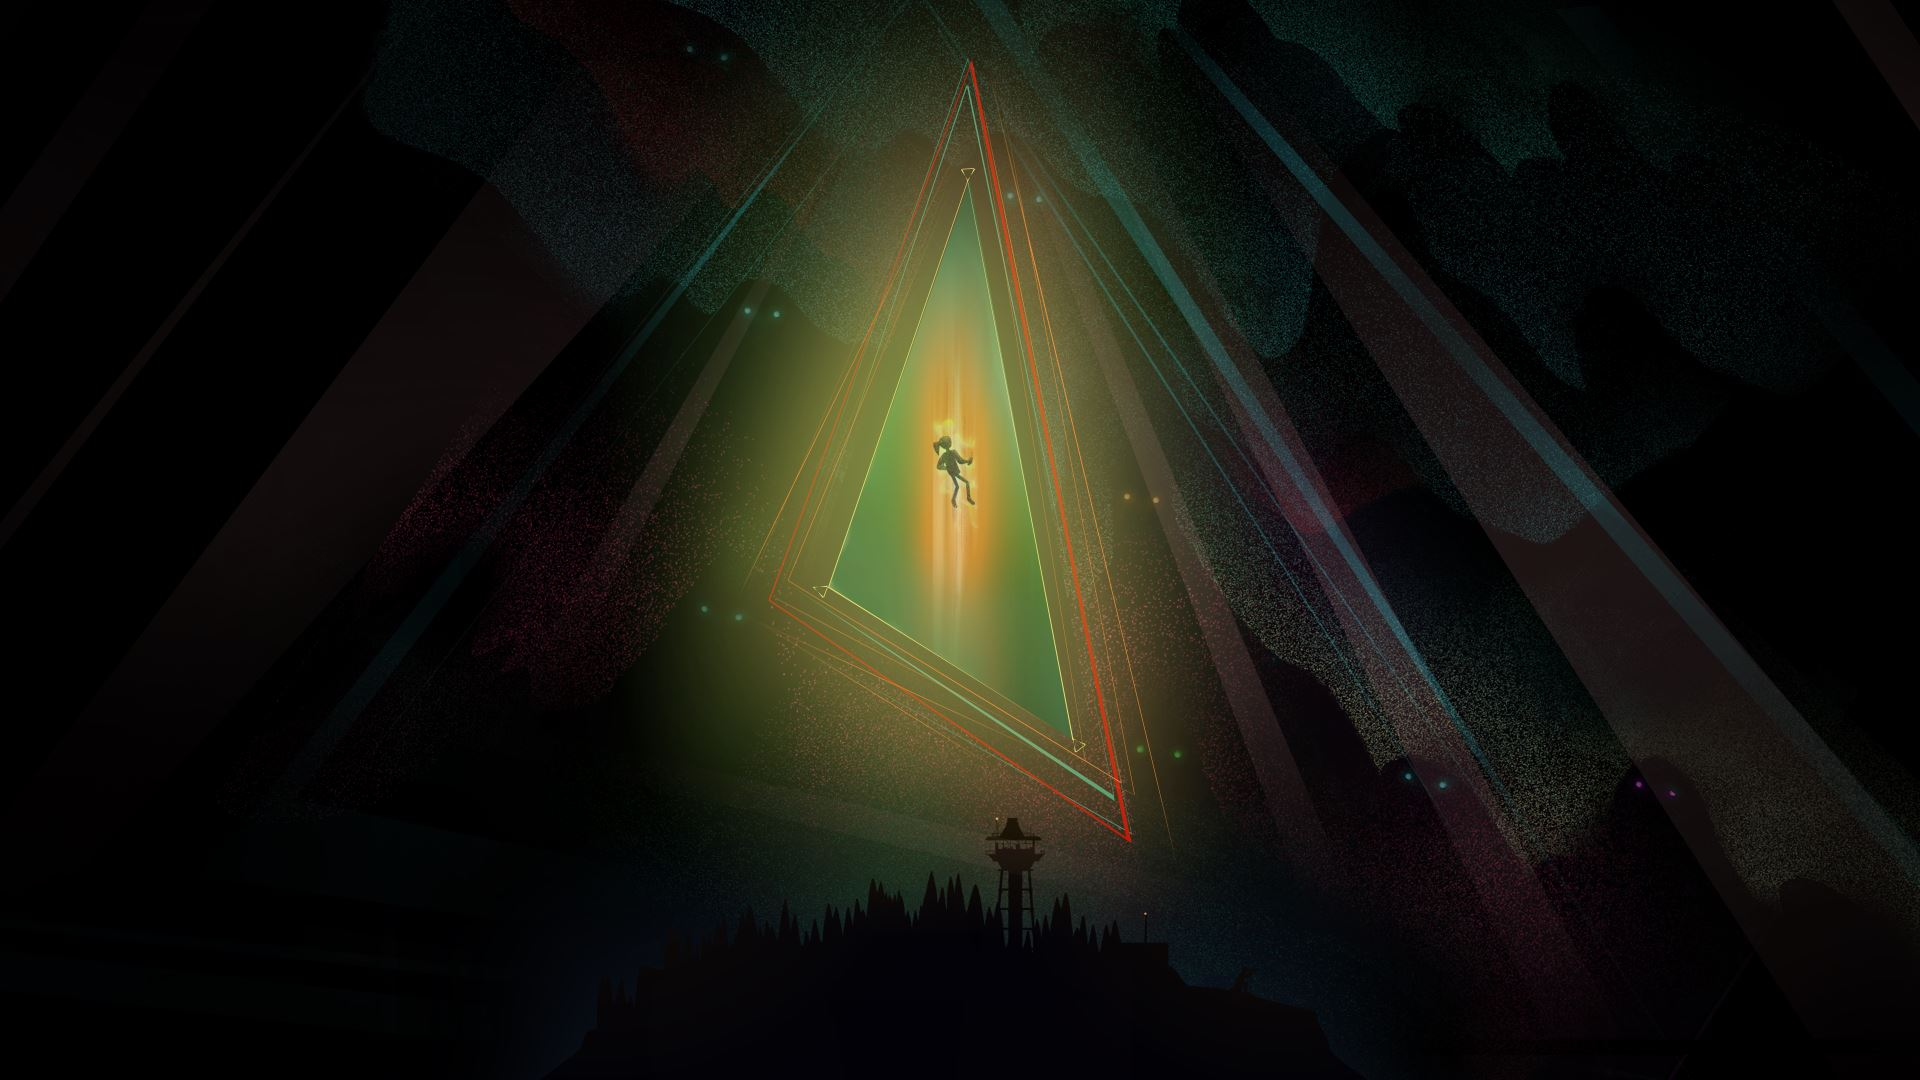 Oxenfree Game Wallpapers Archives - Hdwallsourcecom-3570